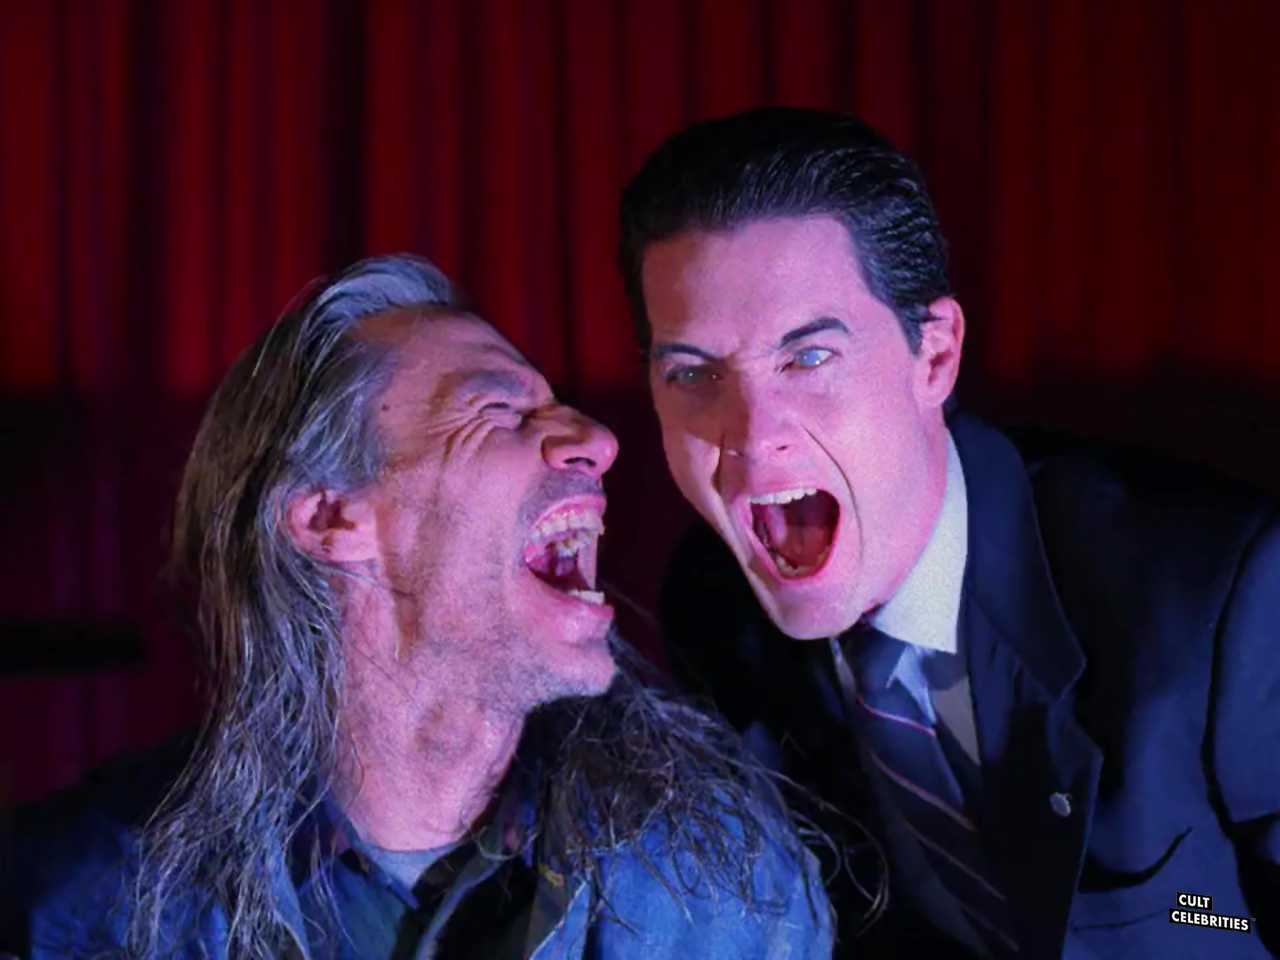 Frank Silva and Kyle MacLachlan in Twin Peaks (1990)